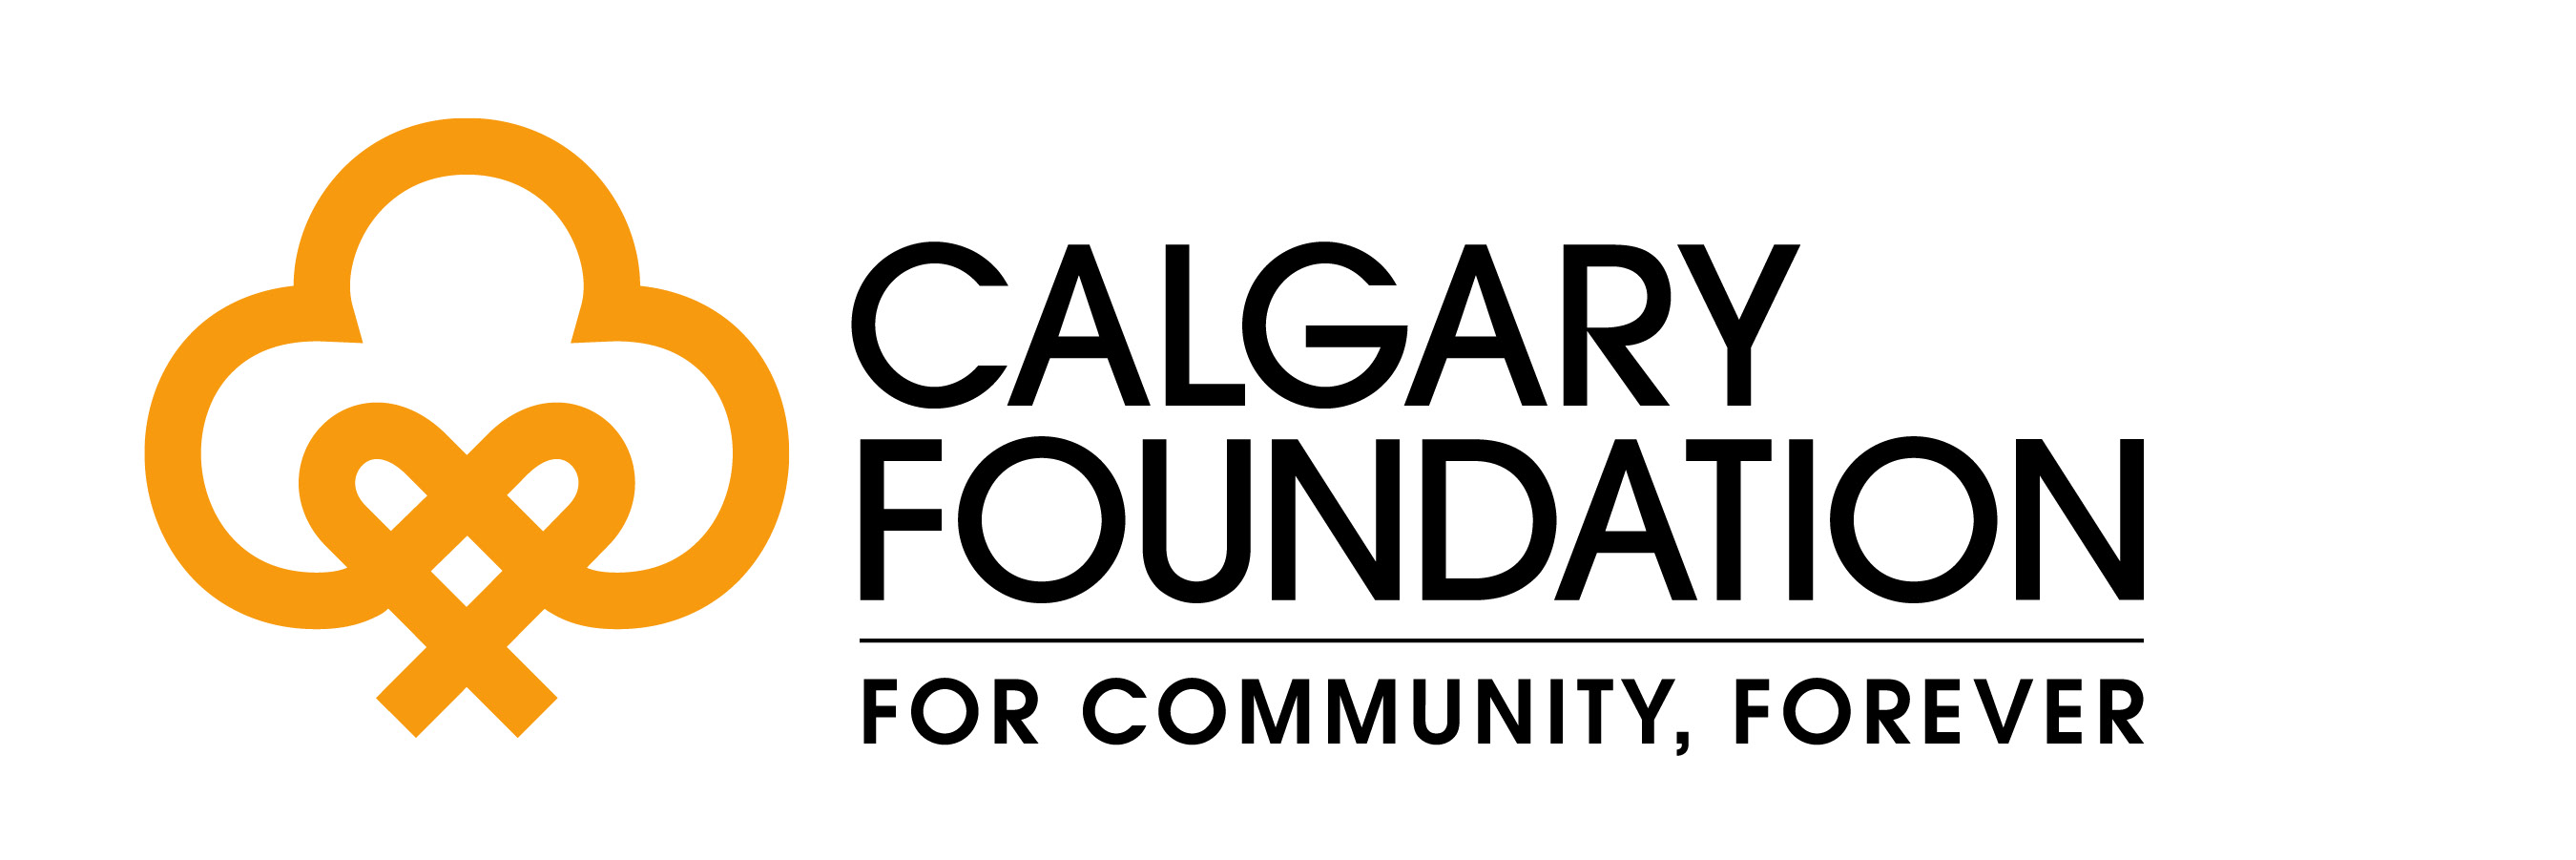 calgary foundation logo LARGER tagline CMYK